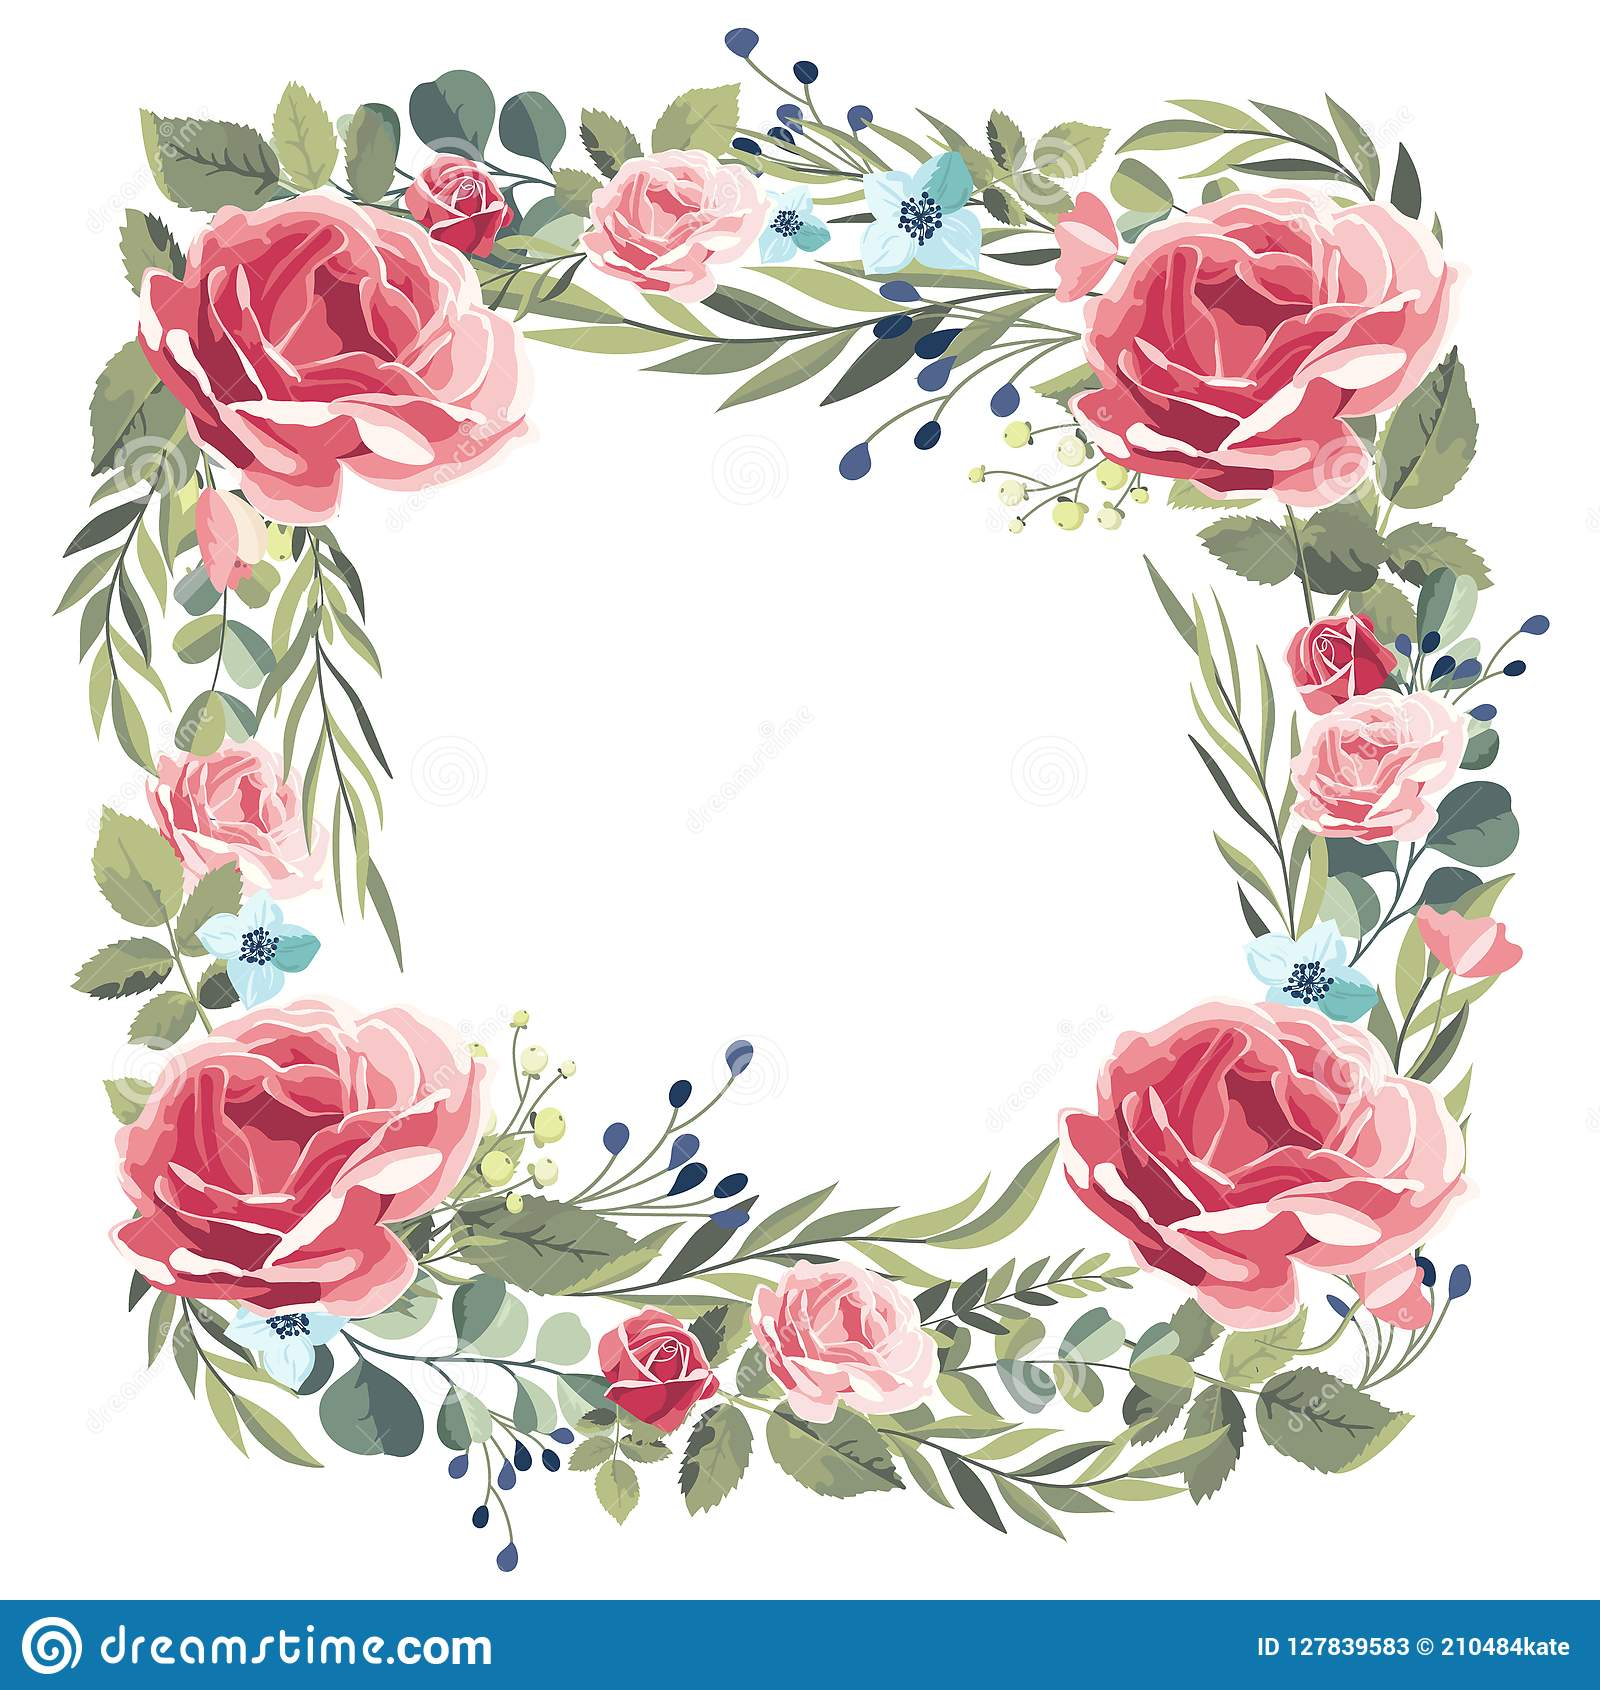 Wreath of vintage pink roses on a white background.